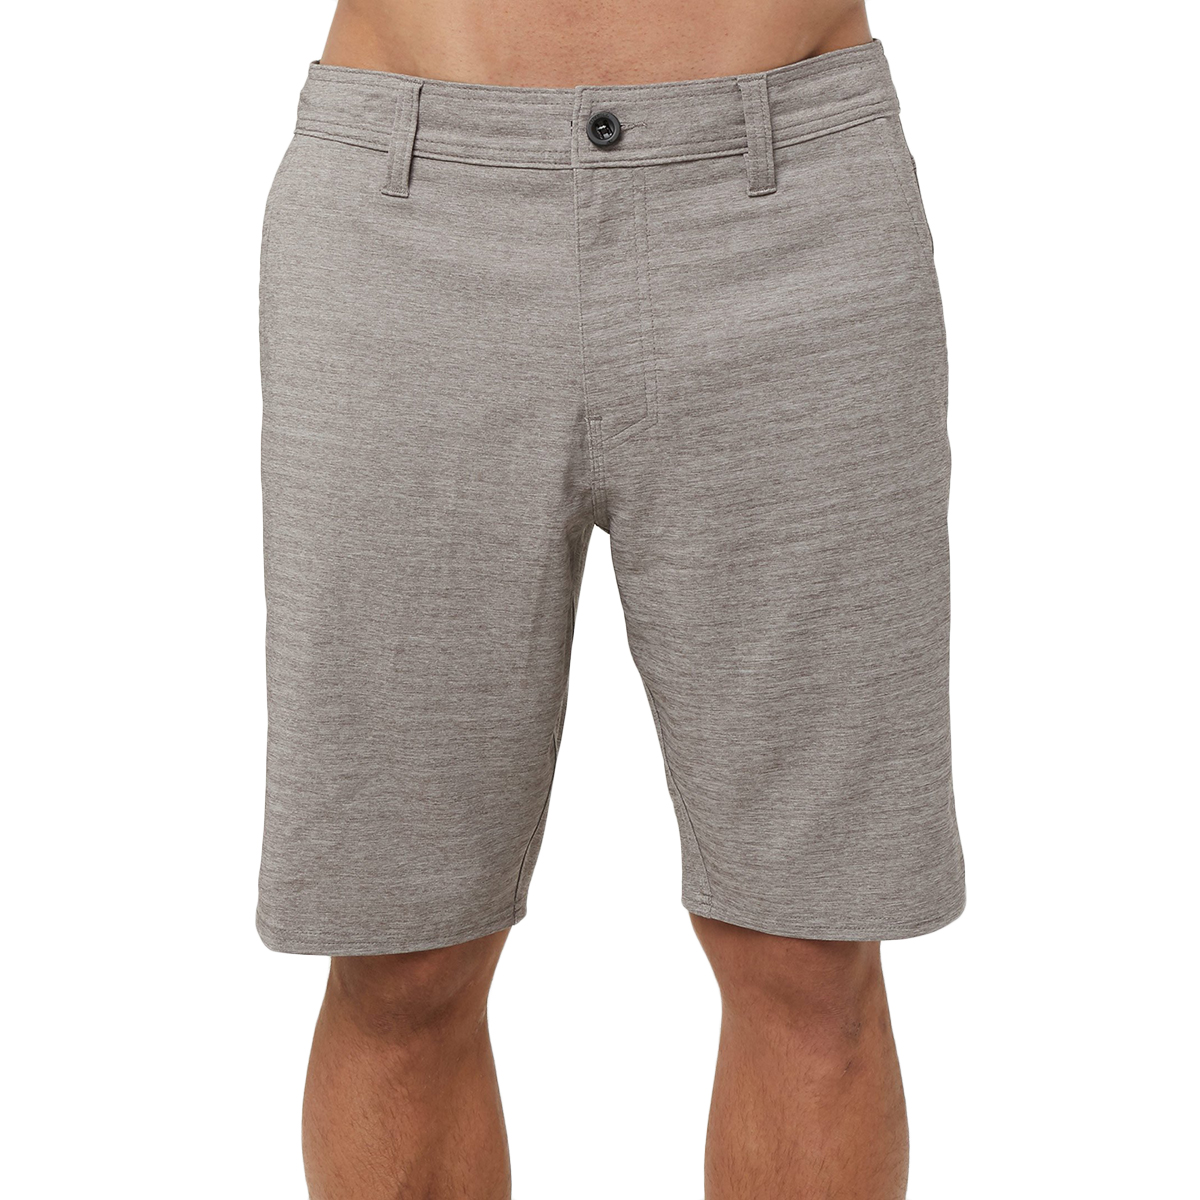 O'neill Men's Locked Heather Herringbone Hybrid Shorts - Black, 34